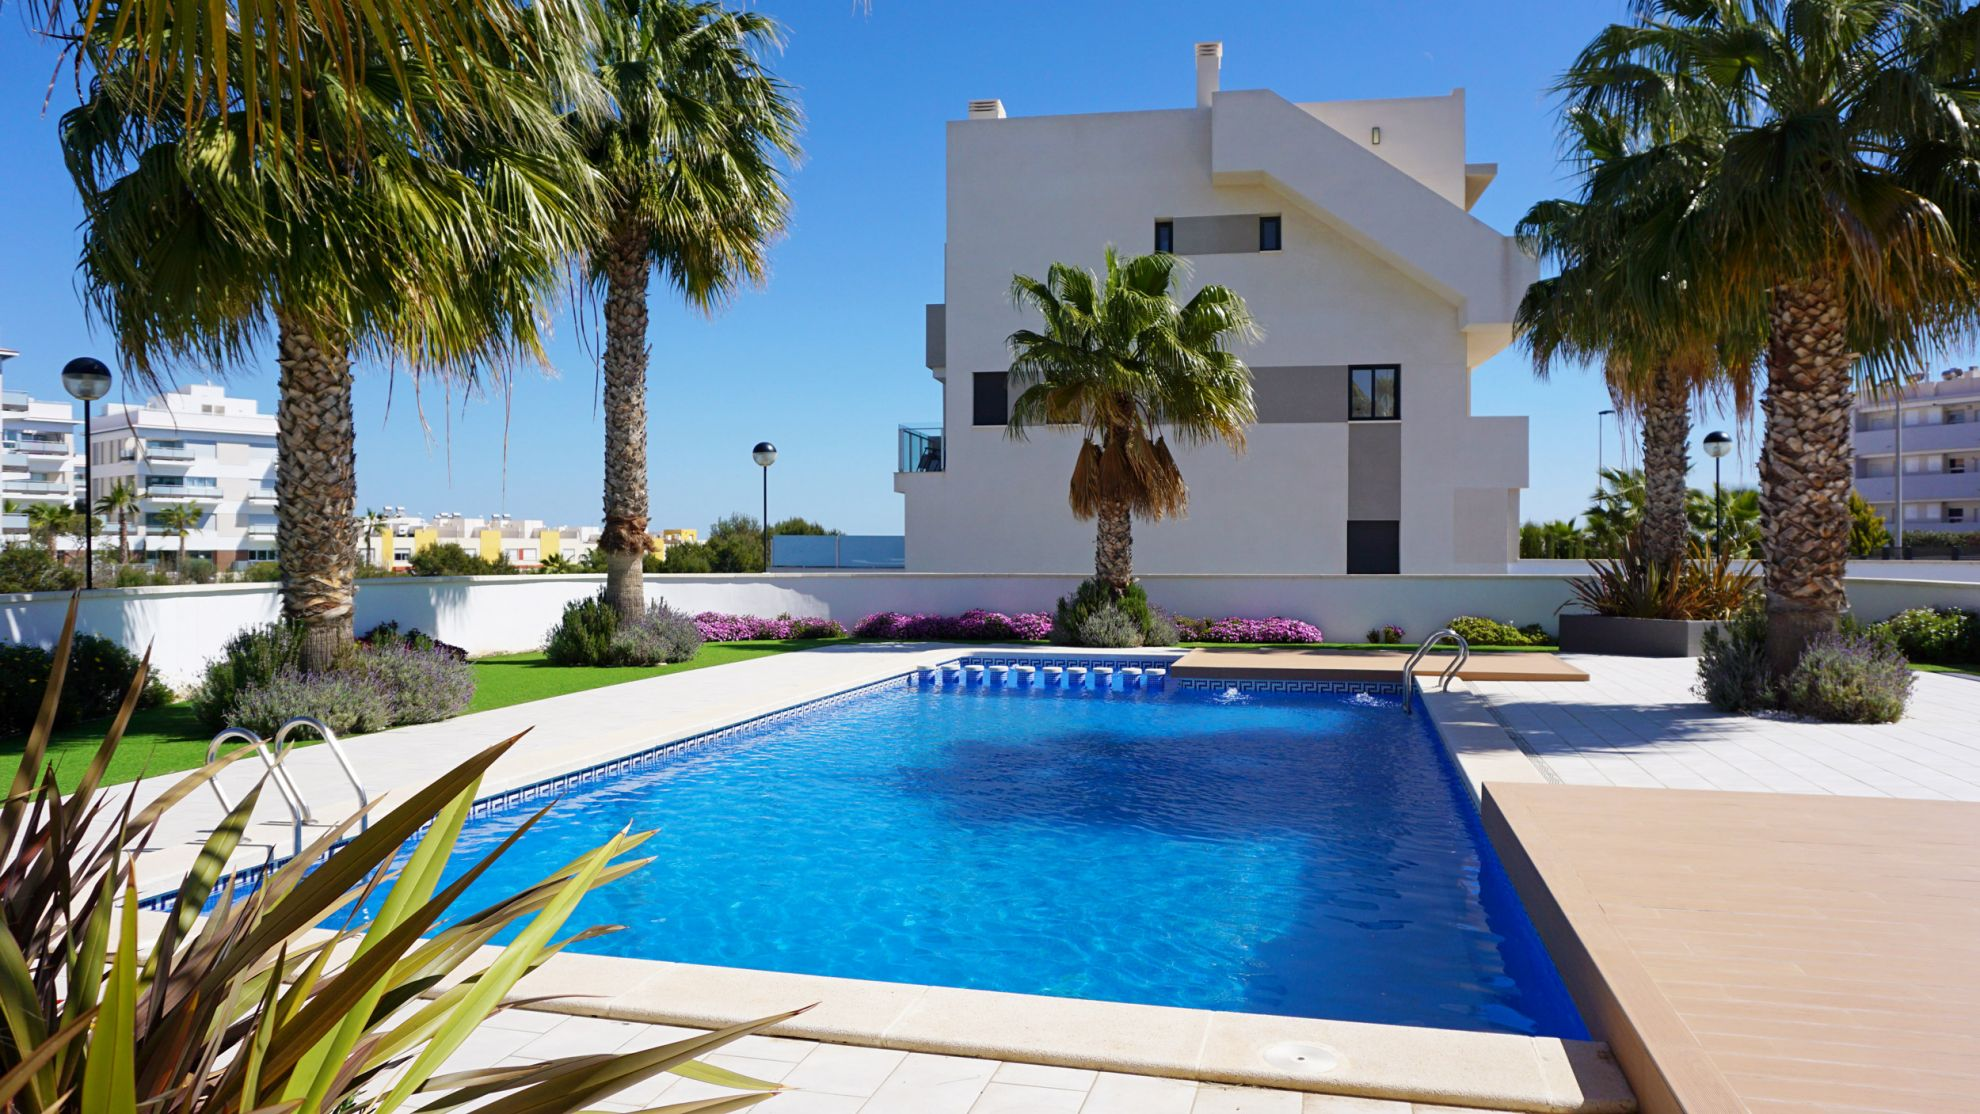 Apartments in La Zenia 2